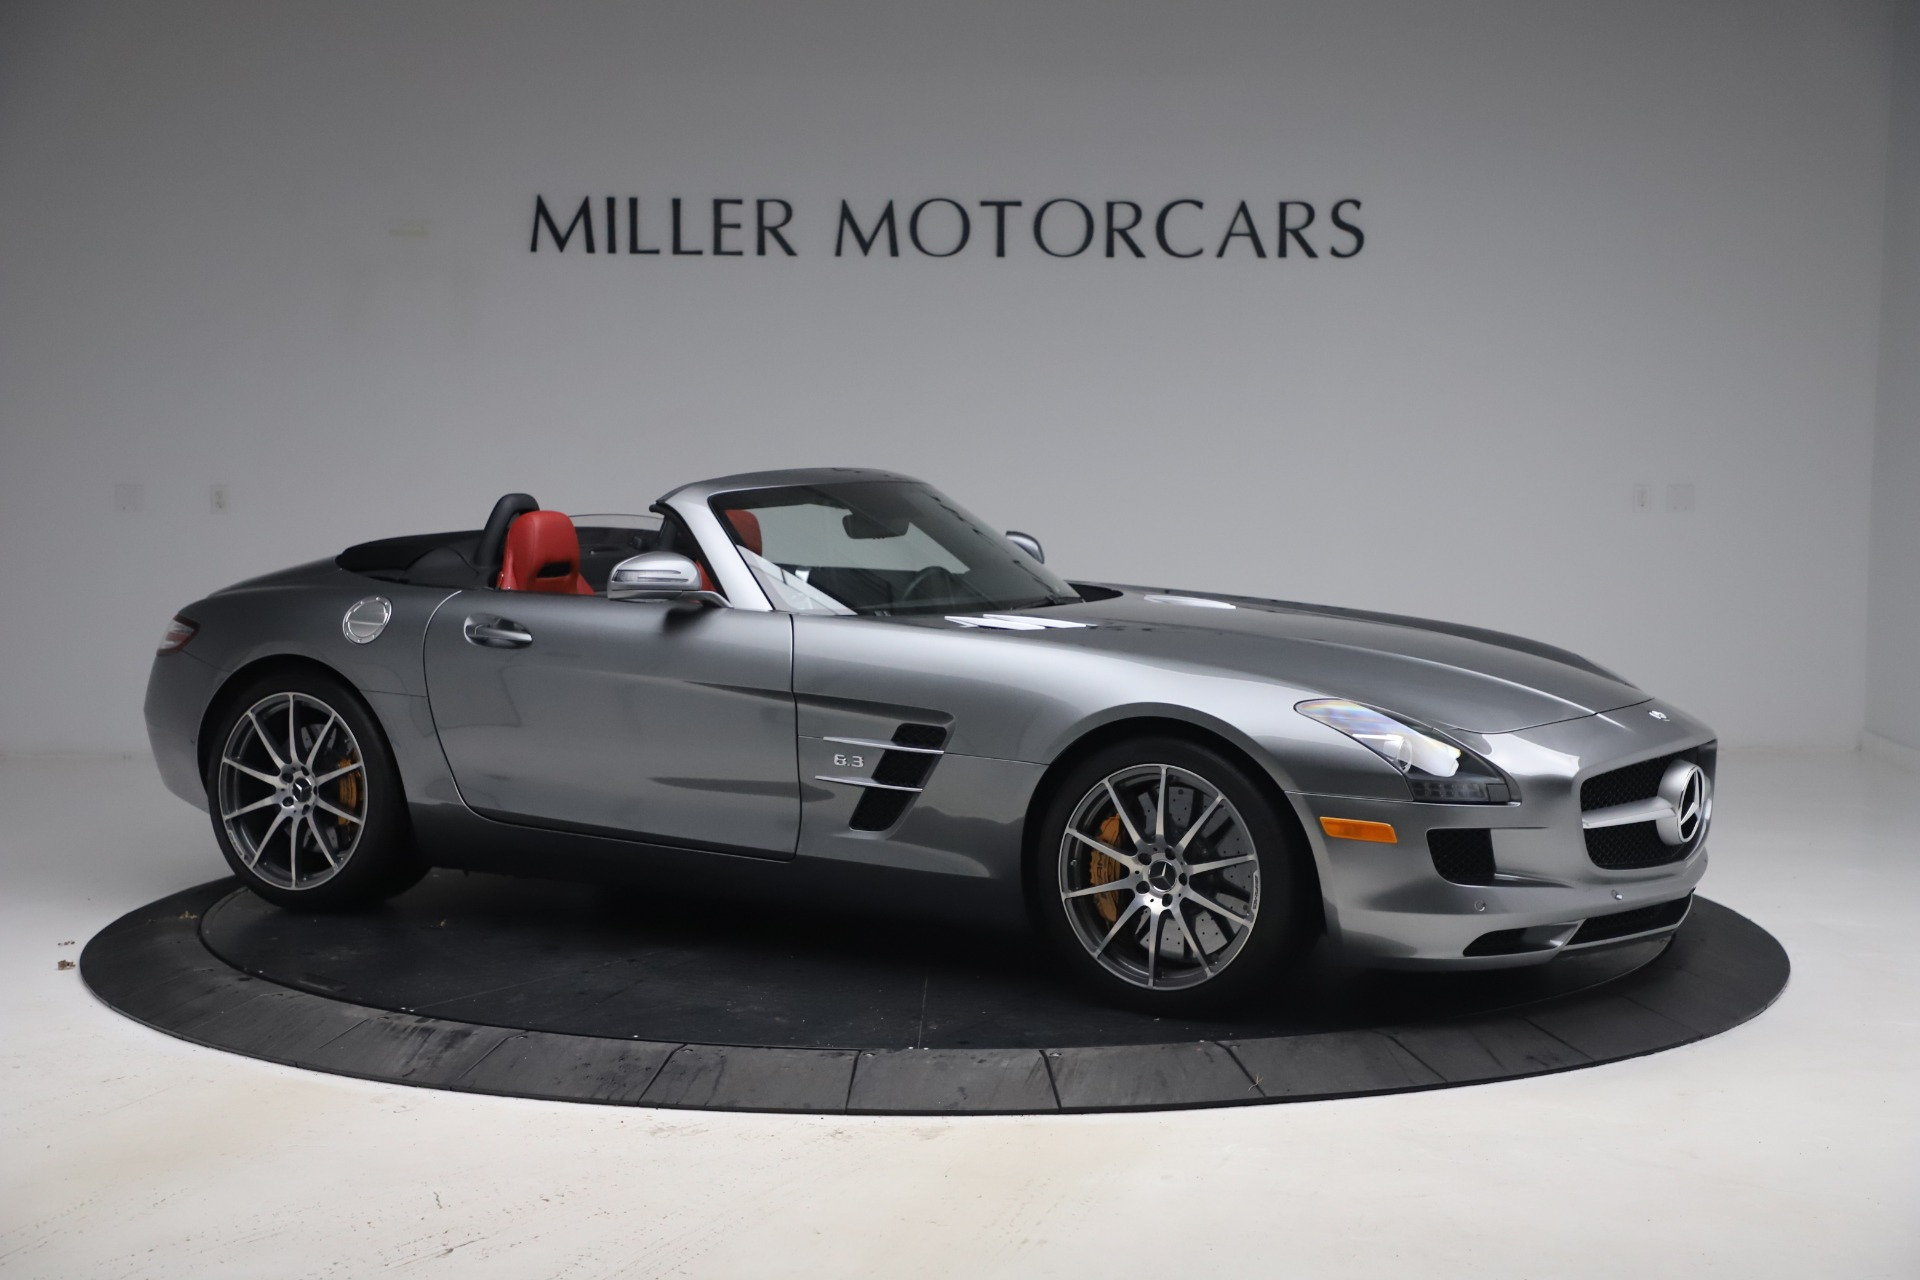 Used 2012 Mercedes-Benz SLS AMG  For Sale In Greenwich, CT 3189_p15